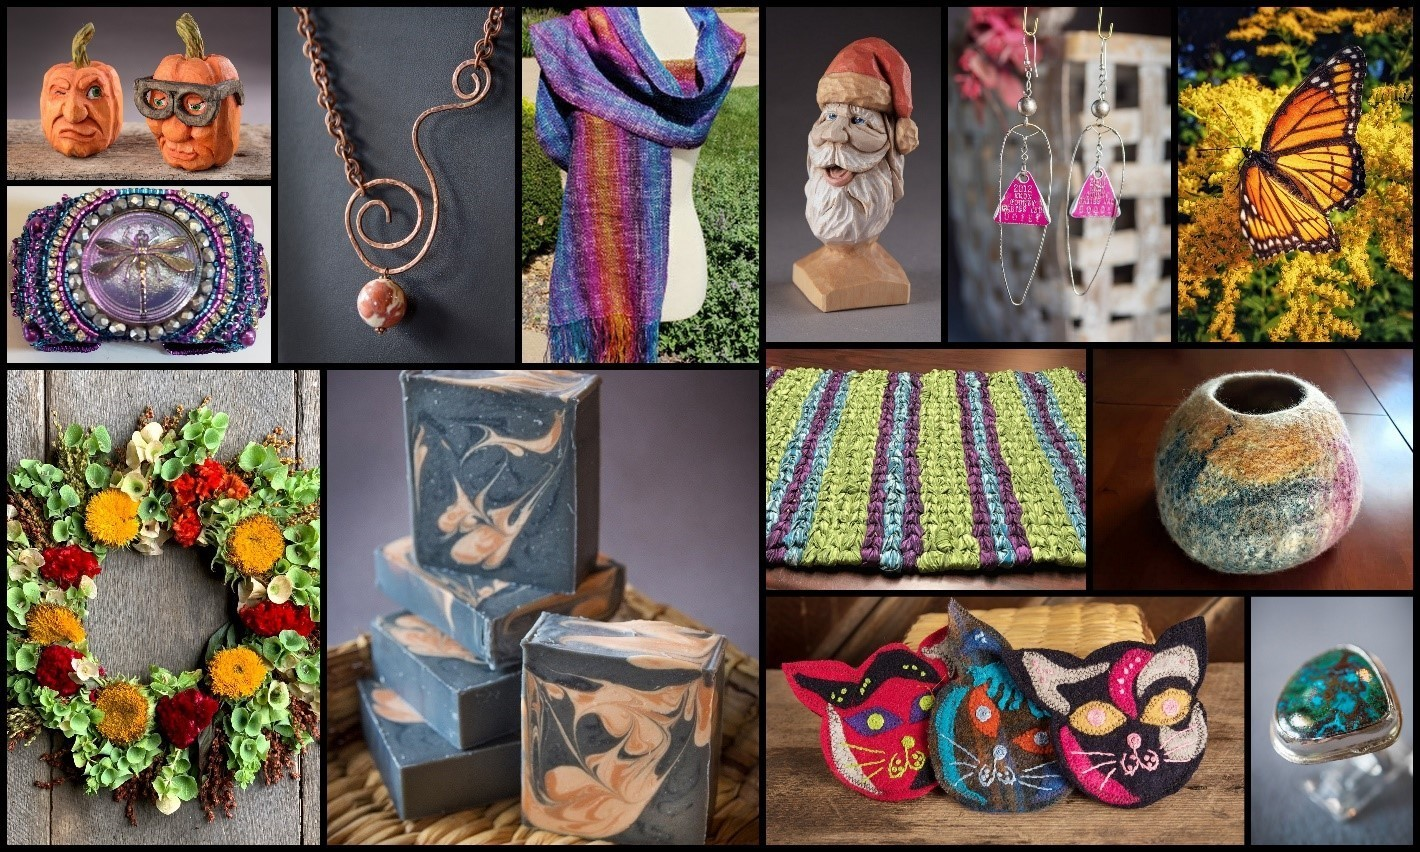 Historic Walnut Grove Farm is sponsoring a virtual sale featuring accomplished regional artists in an online art event this year, given the cancellation of the Knox County Scenic Drive.